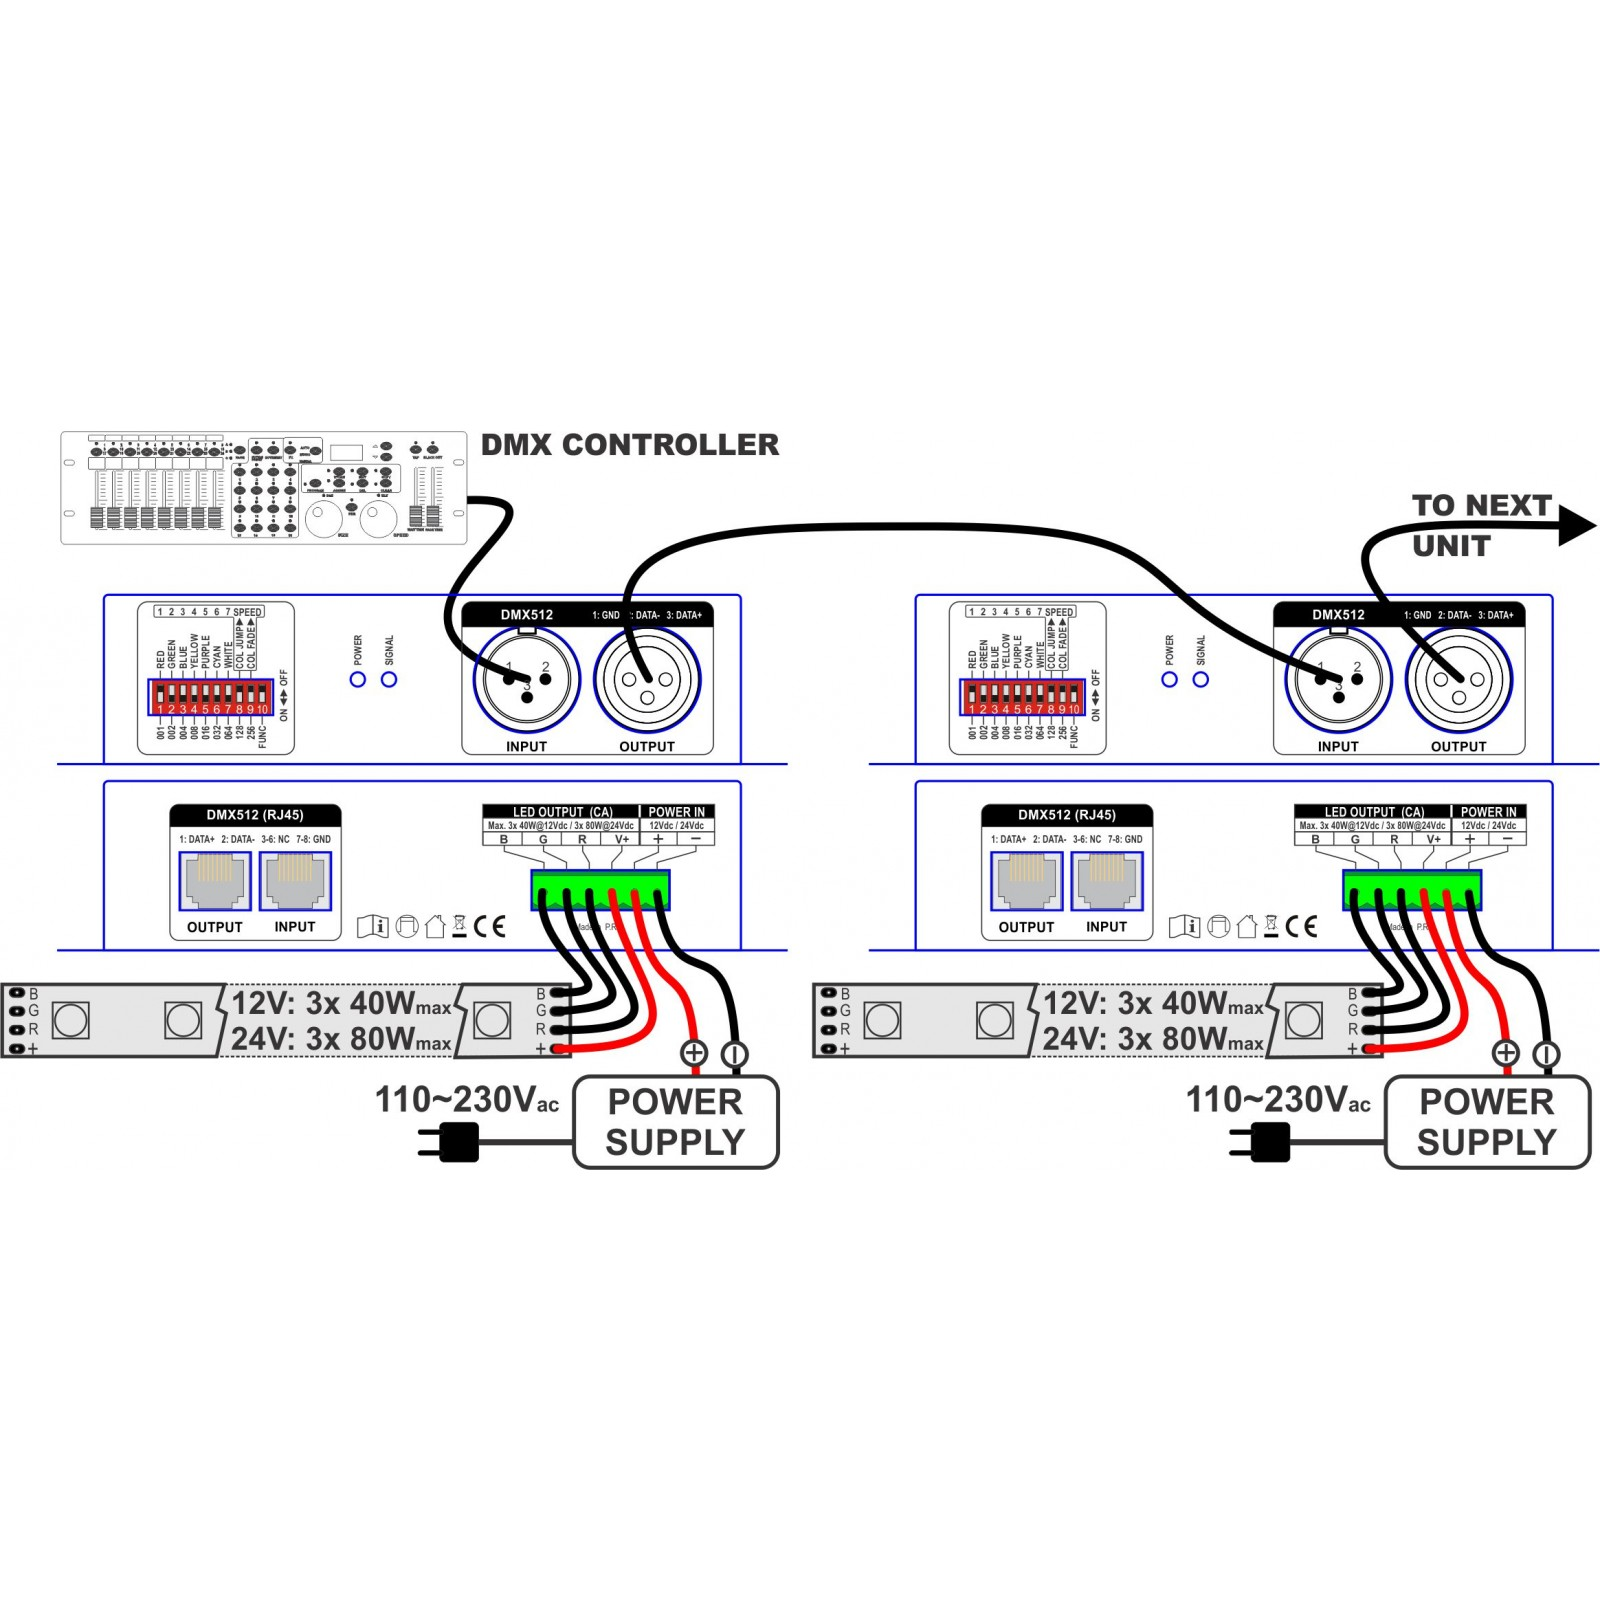 led_dmx-control_xlr-_connection_dmx_2pc_rgb Xlr Wiring Diagram on unbalanced mono female, 4 pin connector, 1 rca unbalanced, audio cable, male connector, 1 4 inch mono plug, 3-pin microphone, stereo rca, capacitor prevent rf, plug rca,